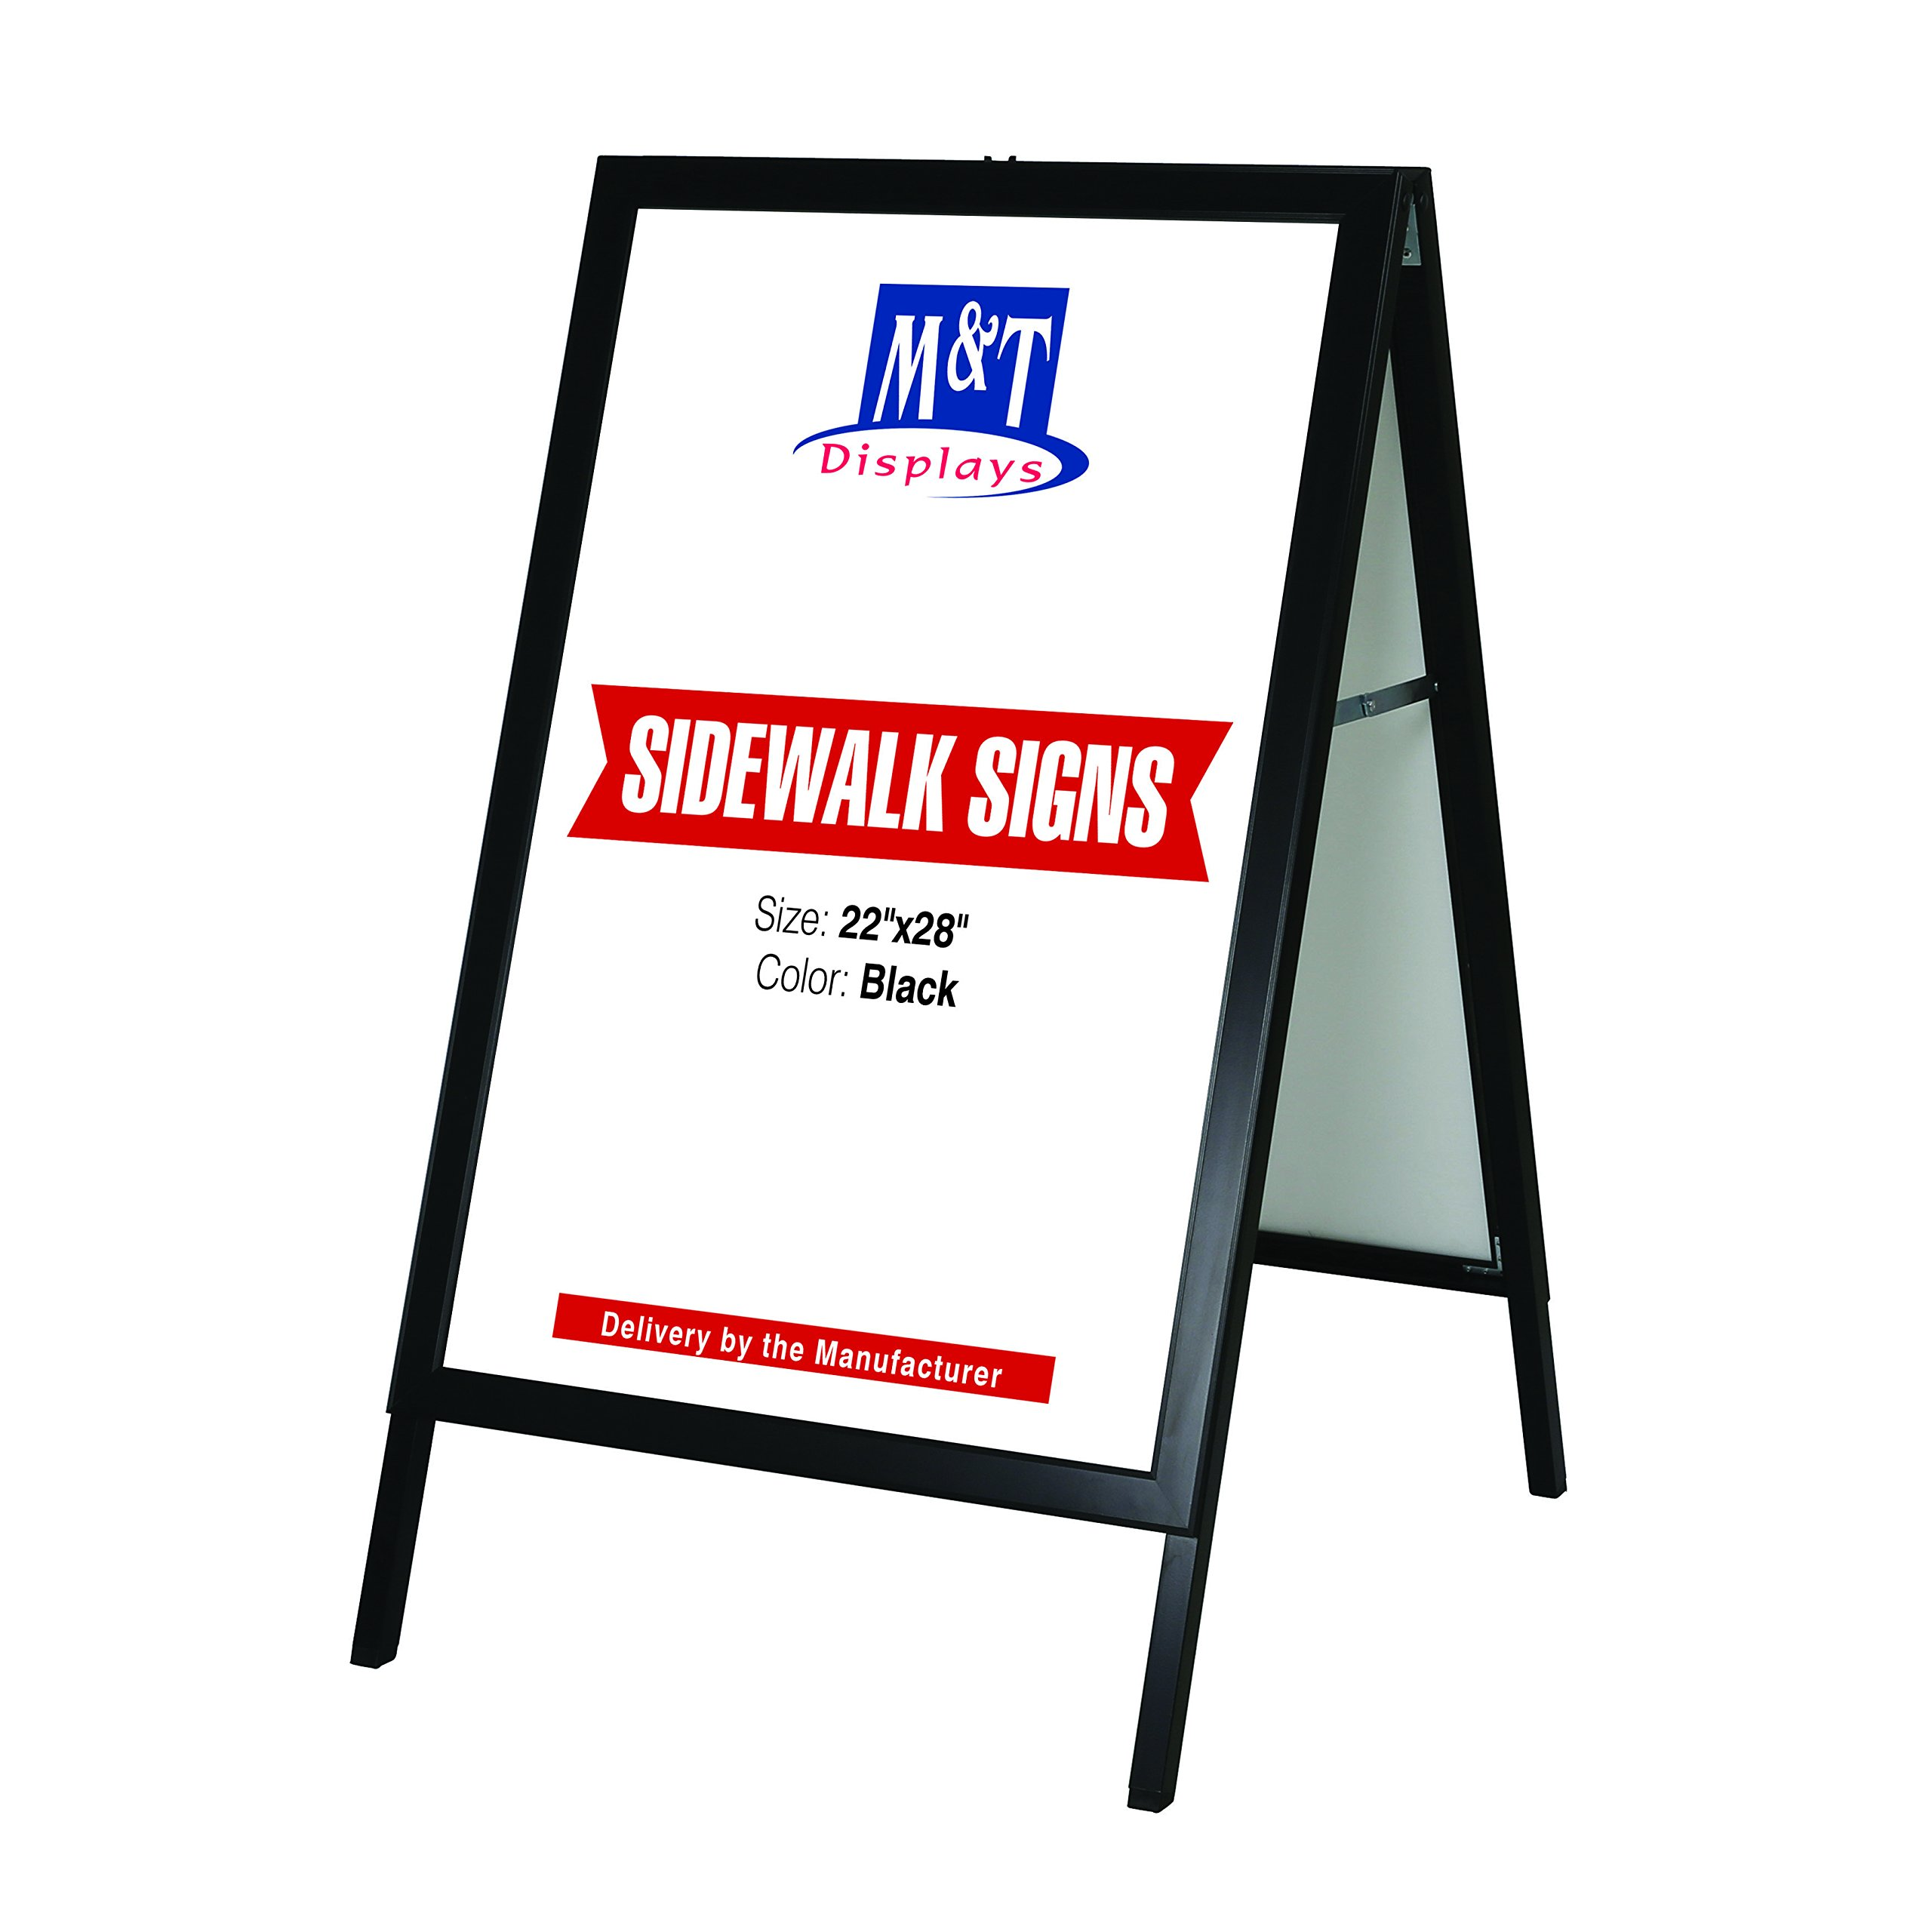 Free Standing Sidewalk Business Restaurant Advertising Display Slide-in A Frame, 22x28 Poster Size, Black by M&T Displays (Image #1)